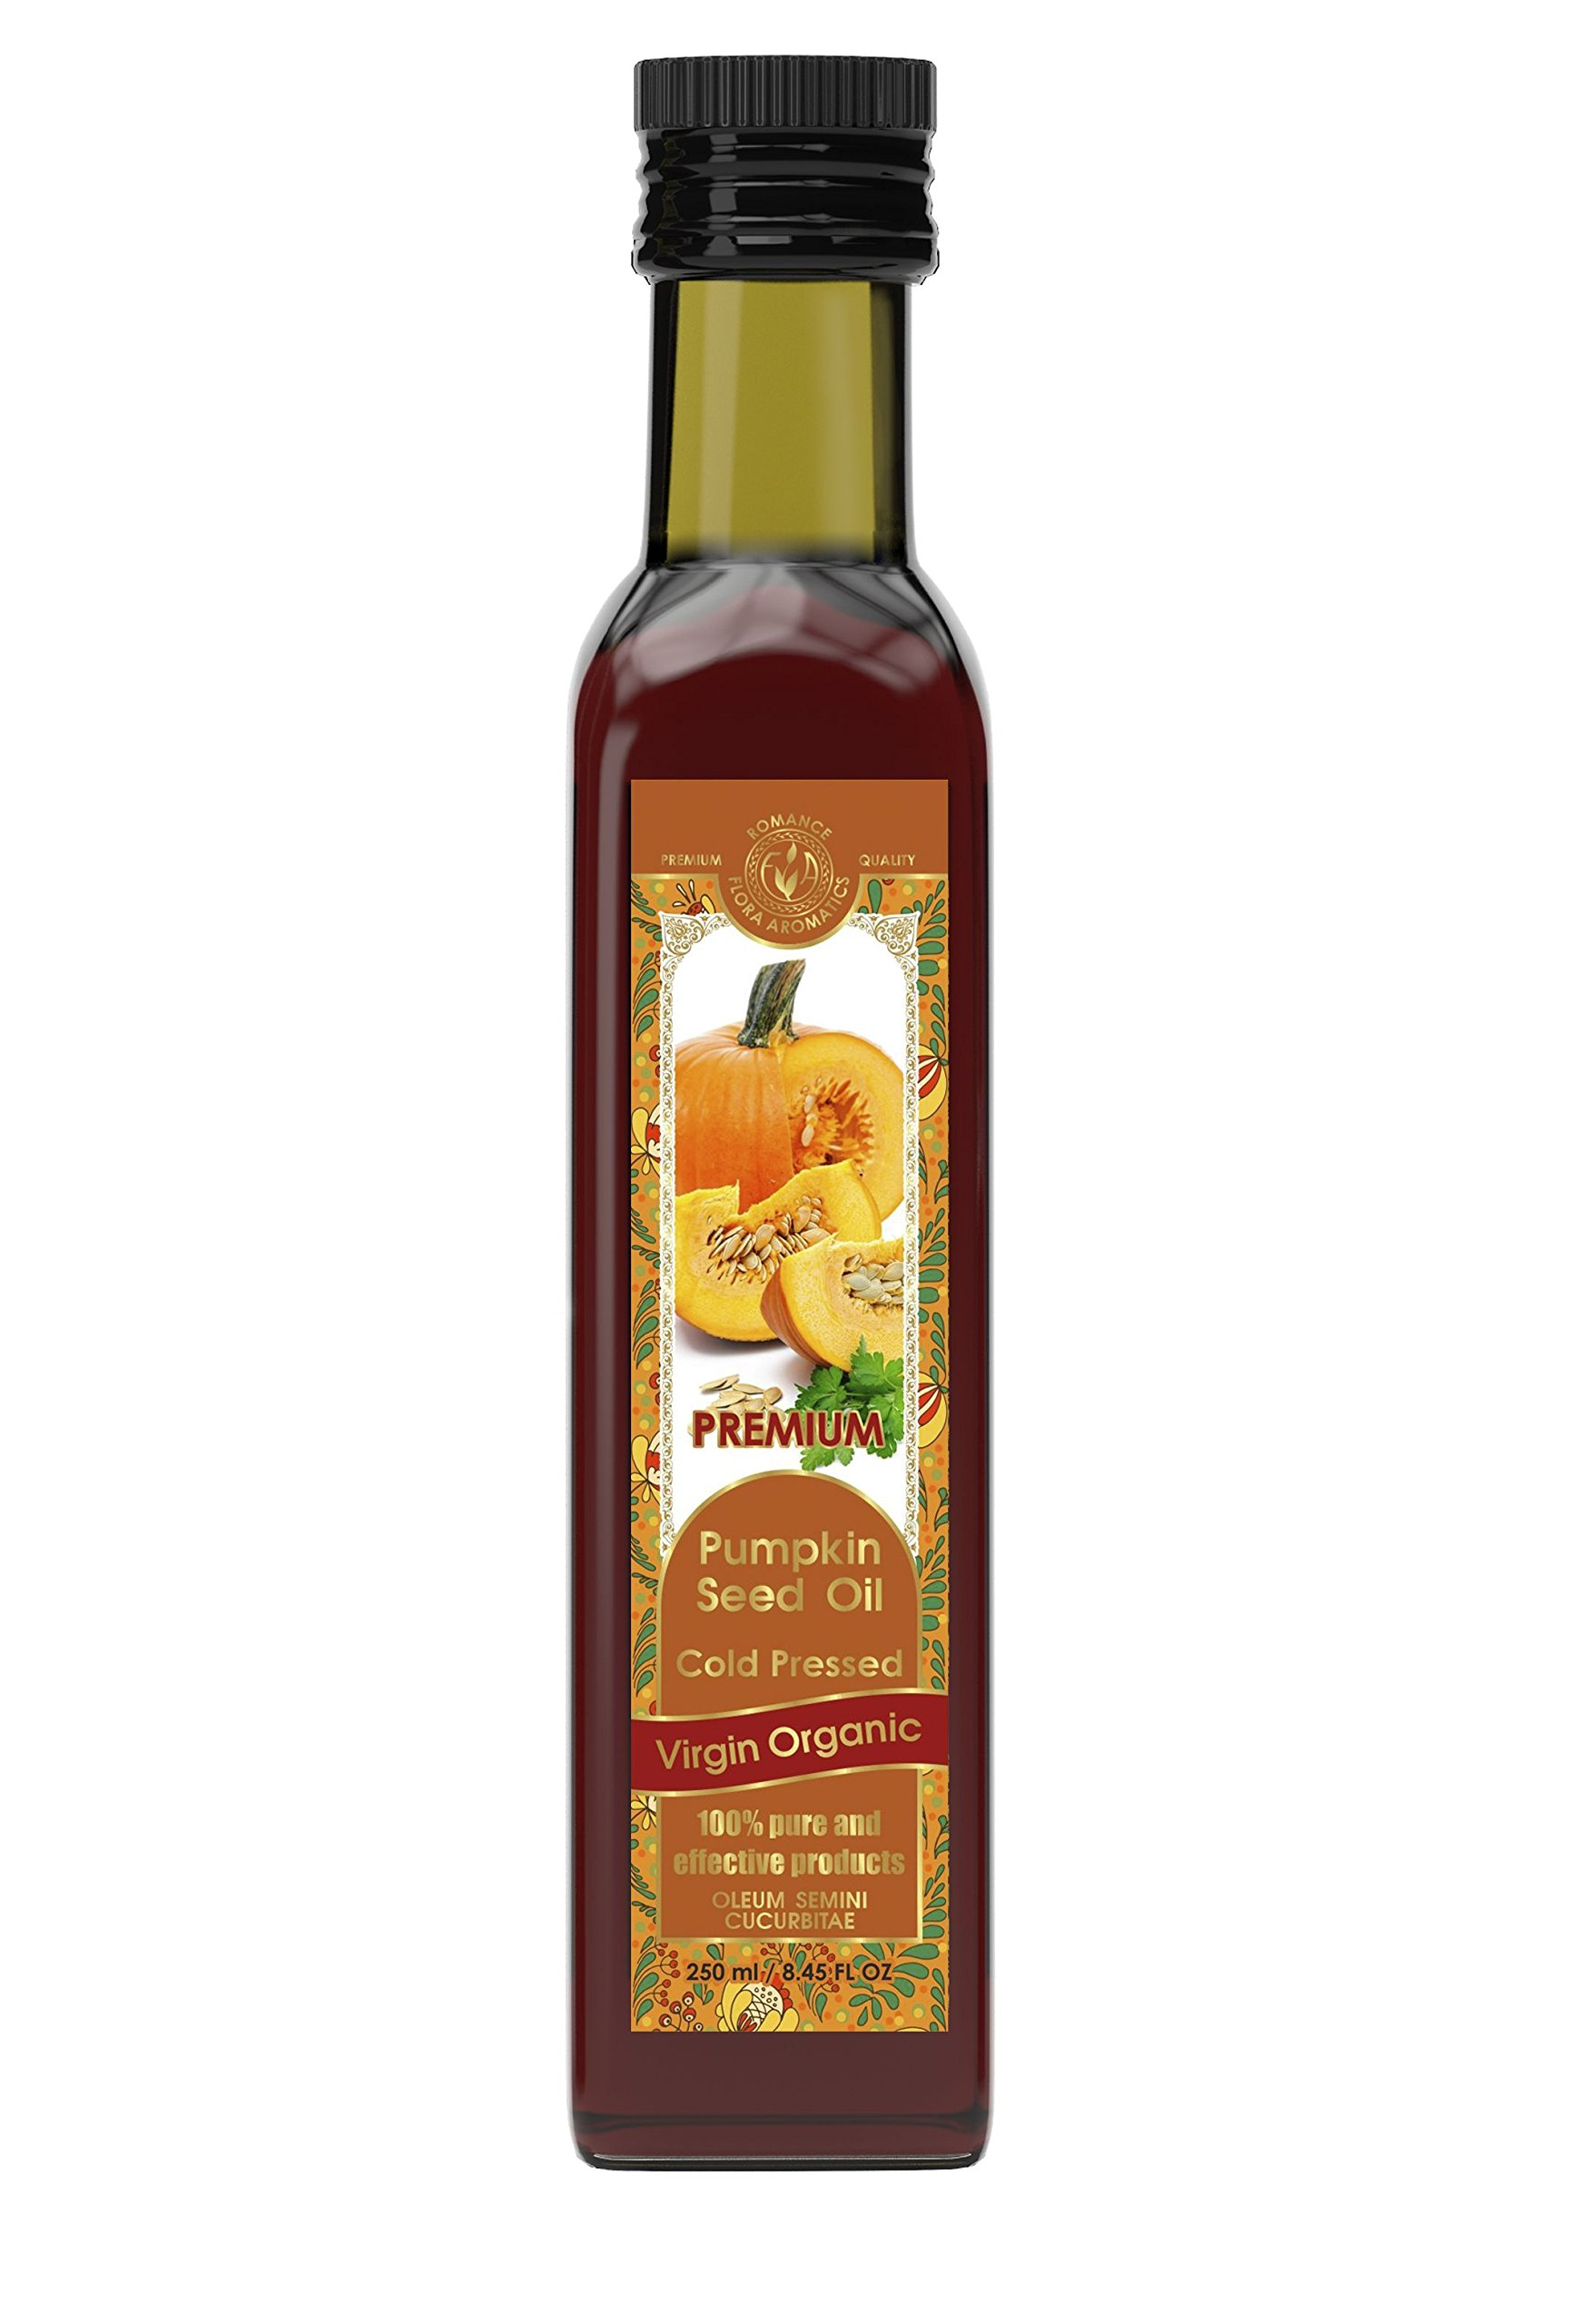 Pumpkin Seed Oil Cold Pressed Virgin Organic 8.45 fl oz/250 ml by Flora Aromatics